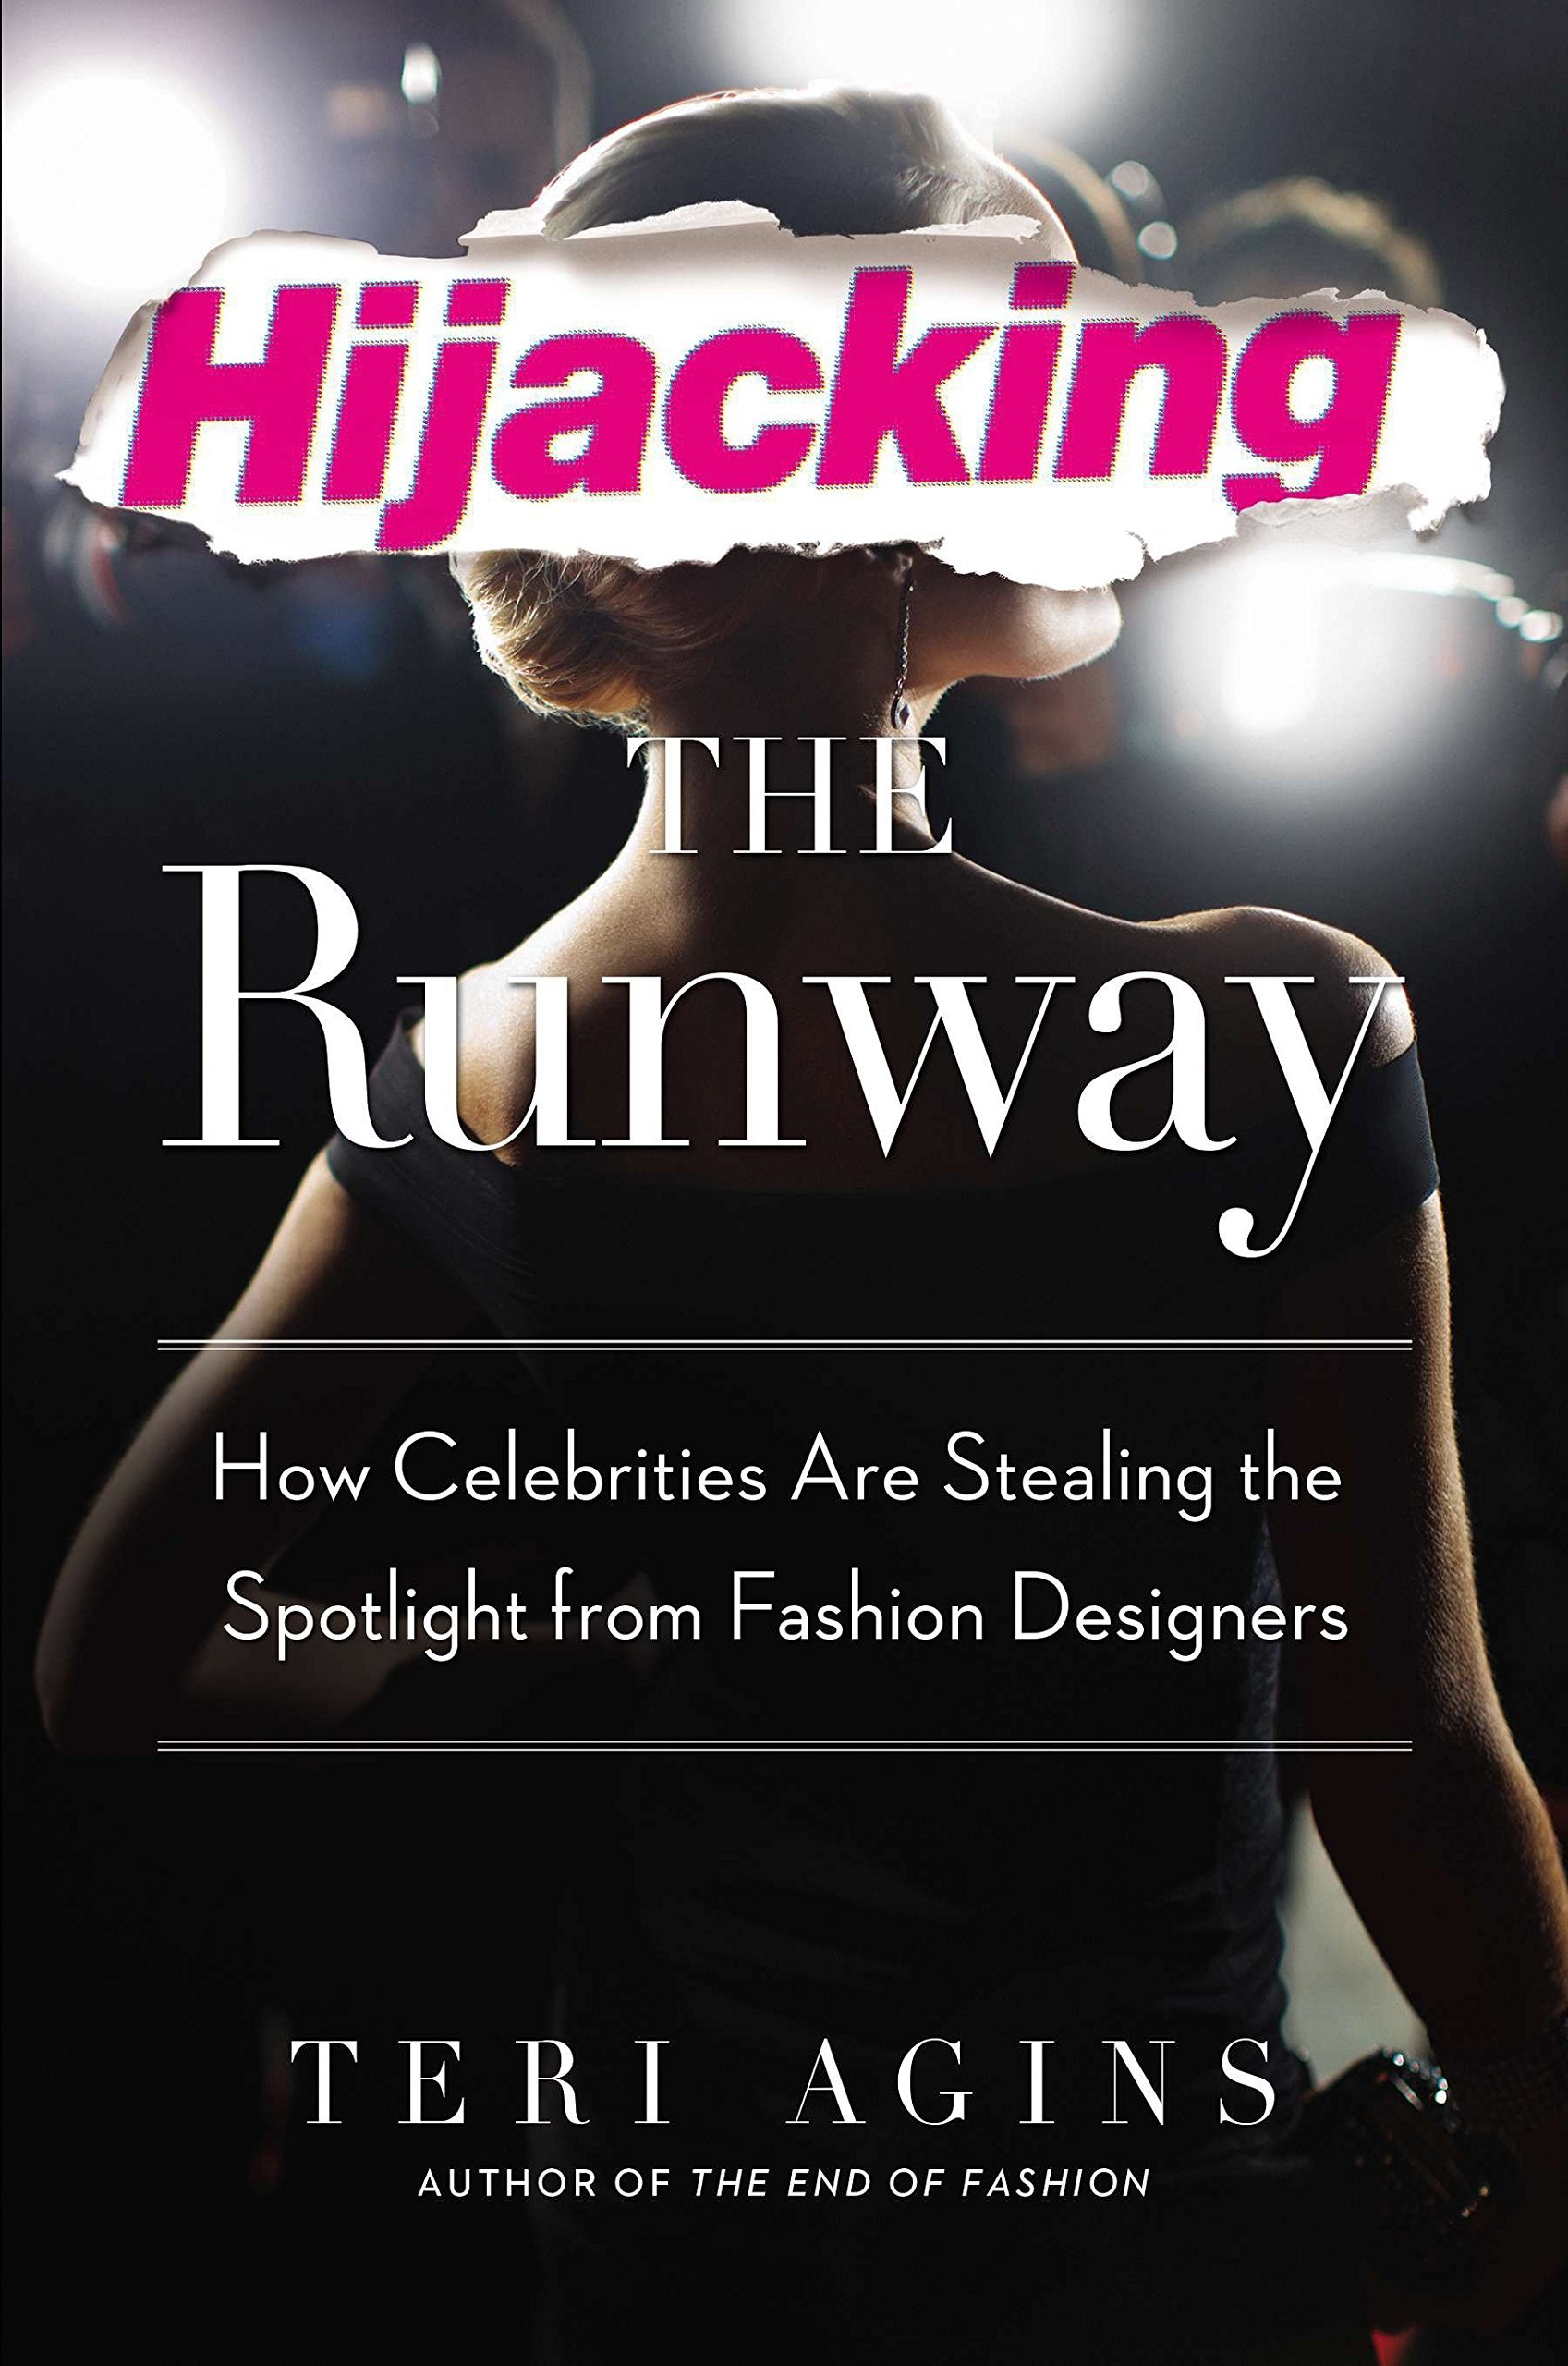 6dec14feddd9 Hijacking the Runway  How Celebrities Are Stealing the Spotlight from  Fashion Designers (Inglês) Capa dura – 9 out 2014